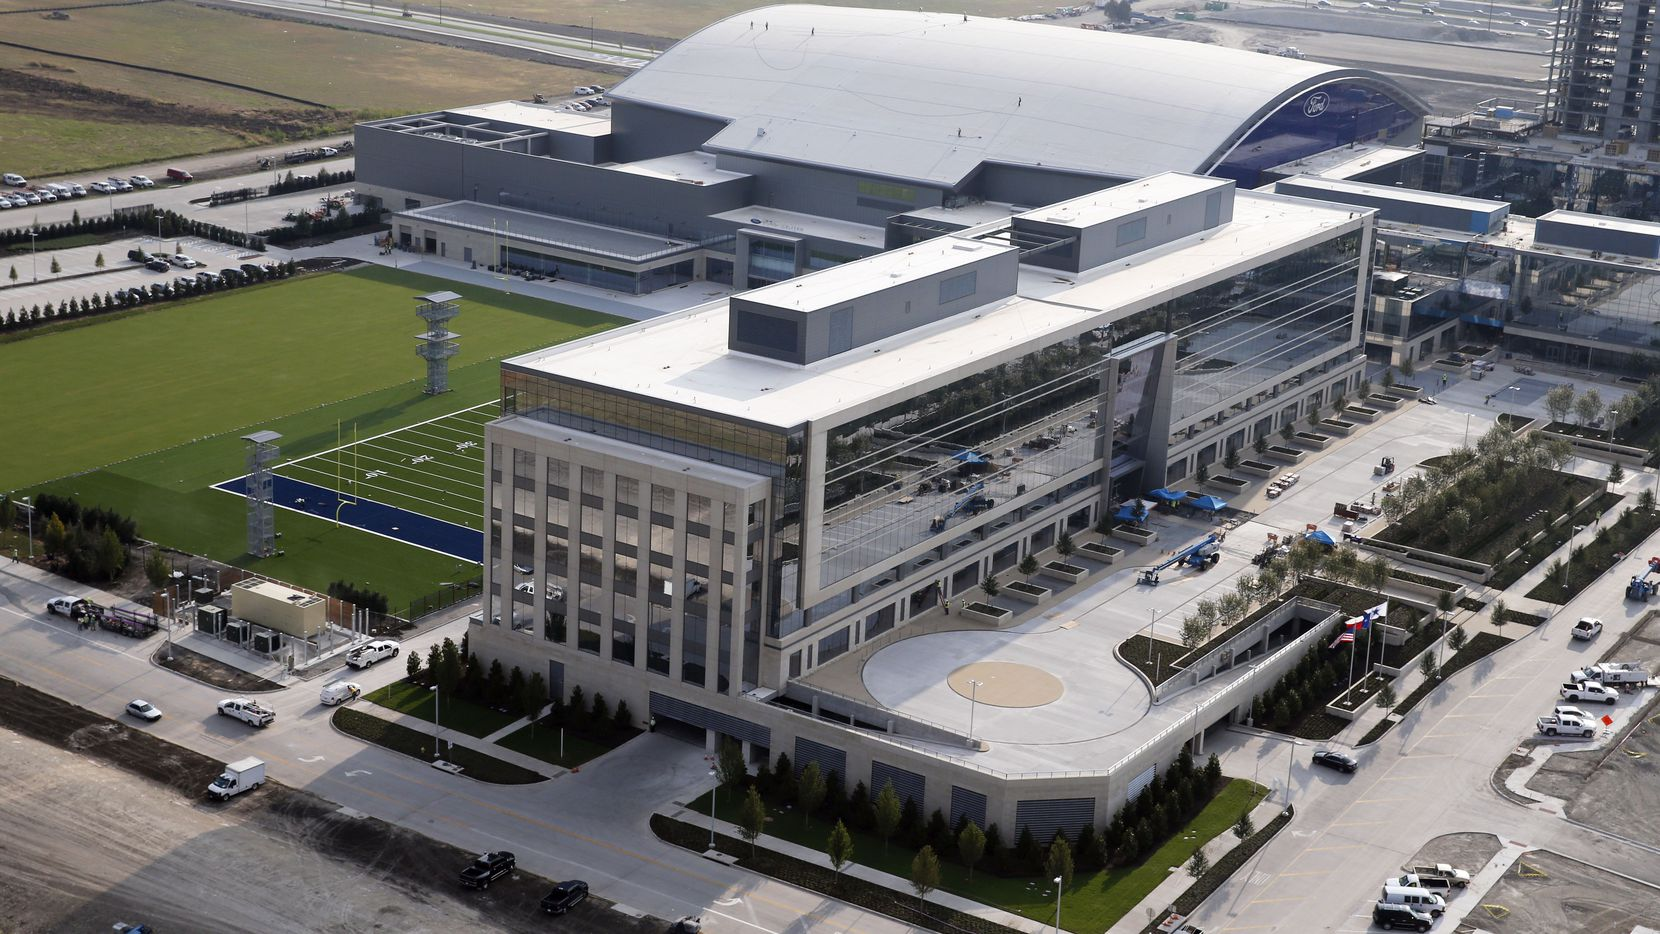 Dallas Cowboys' Star project in Frisco is the new home of Dr Pepper.